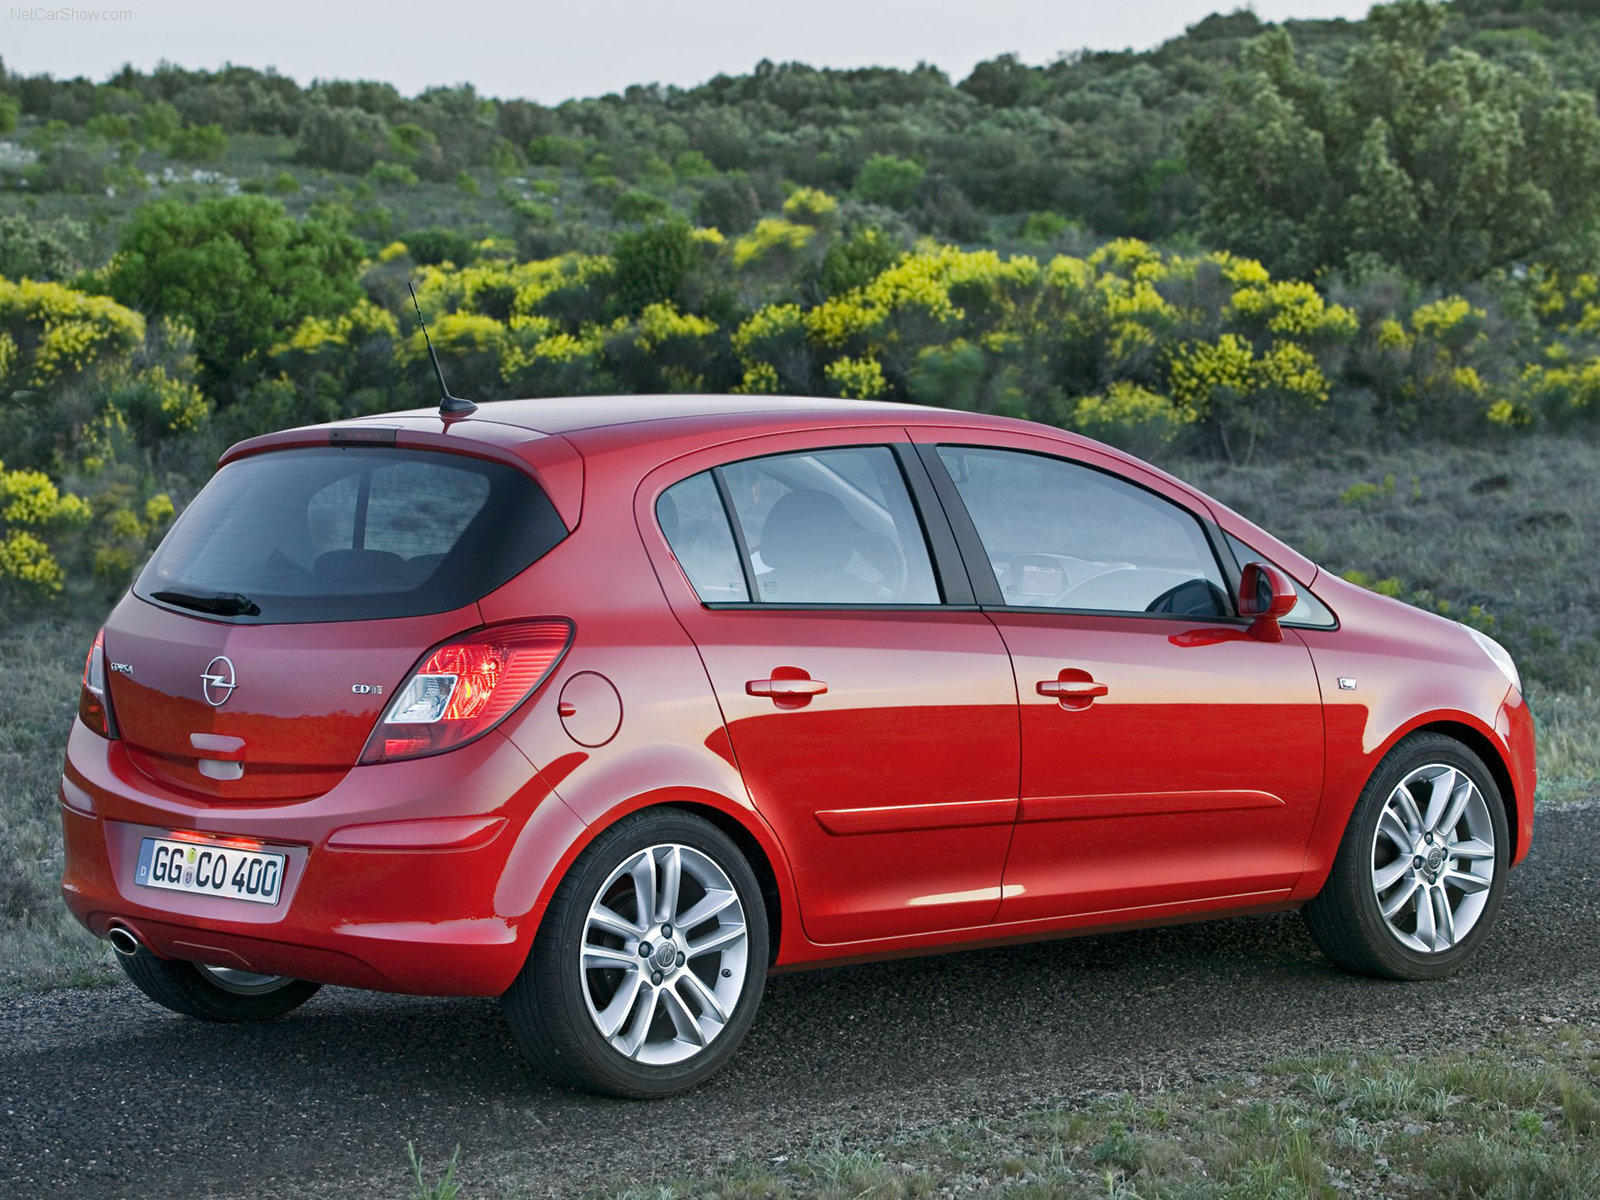 Opel Corsa photo 35498